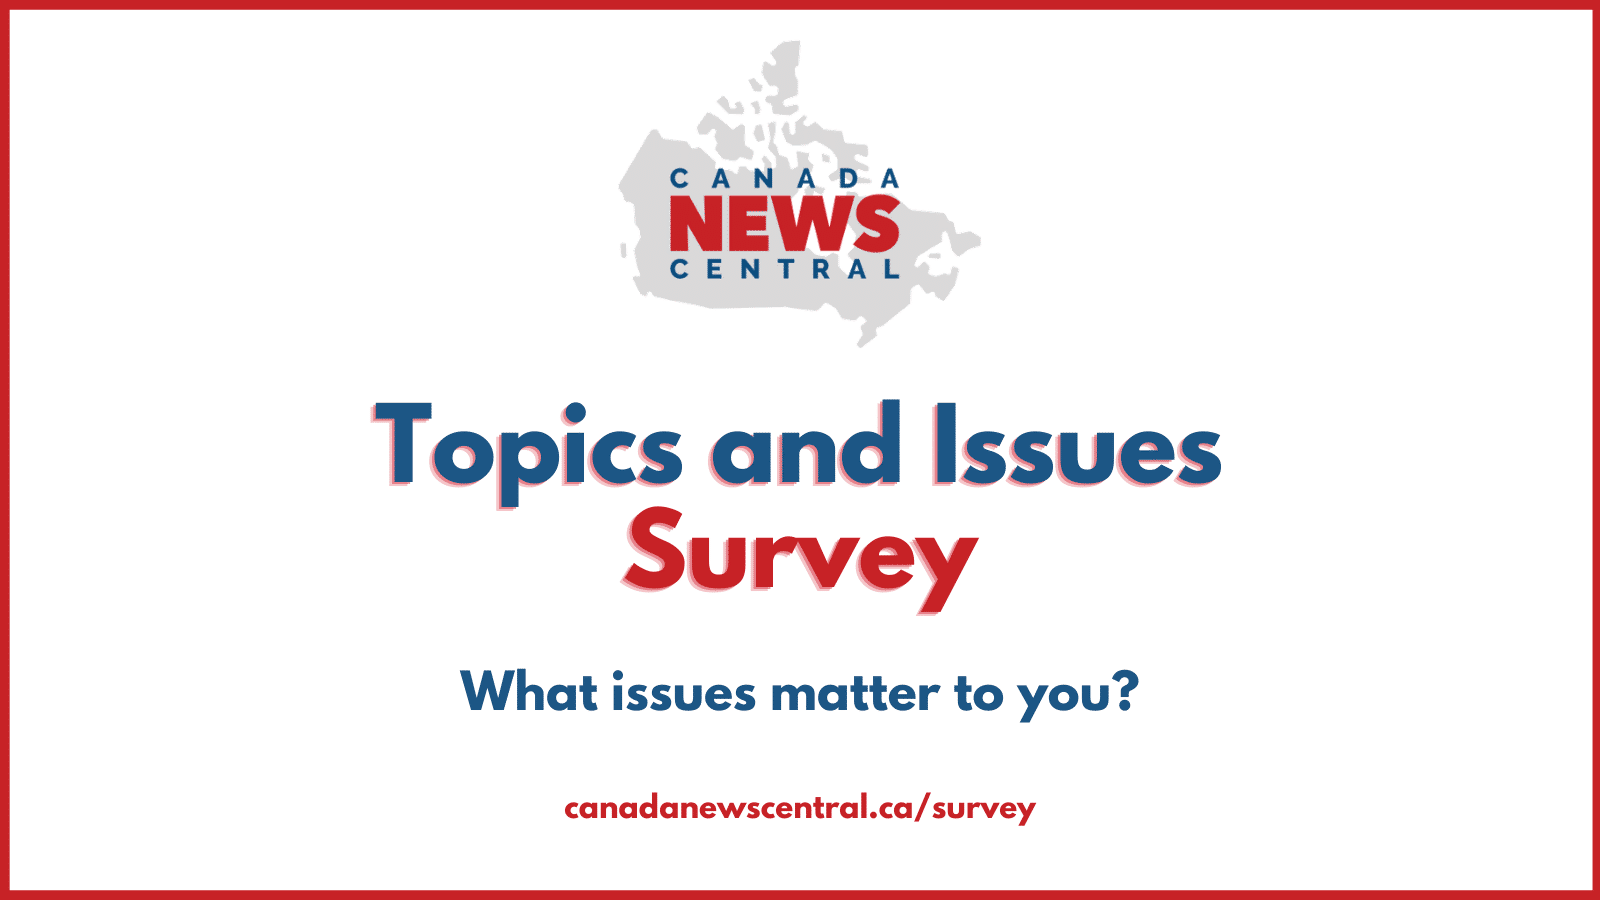 Topics___Issues_Survey_Graphic_2_-_Twitter.png